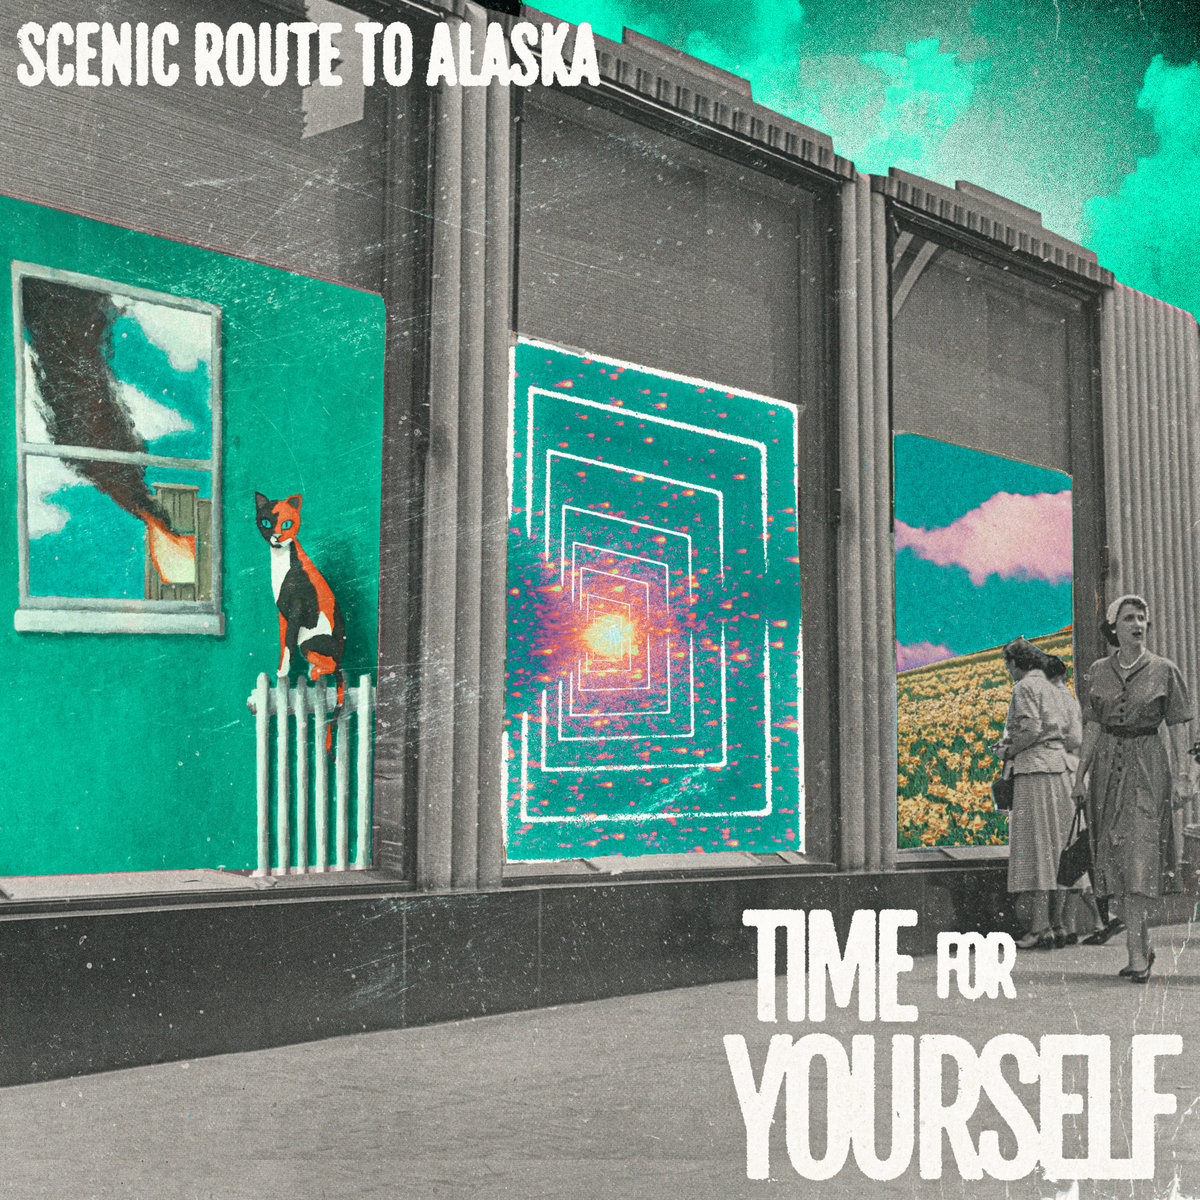 Time For Yourself | Scenic Route to Alaska